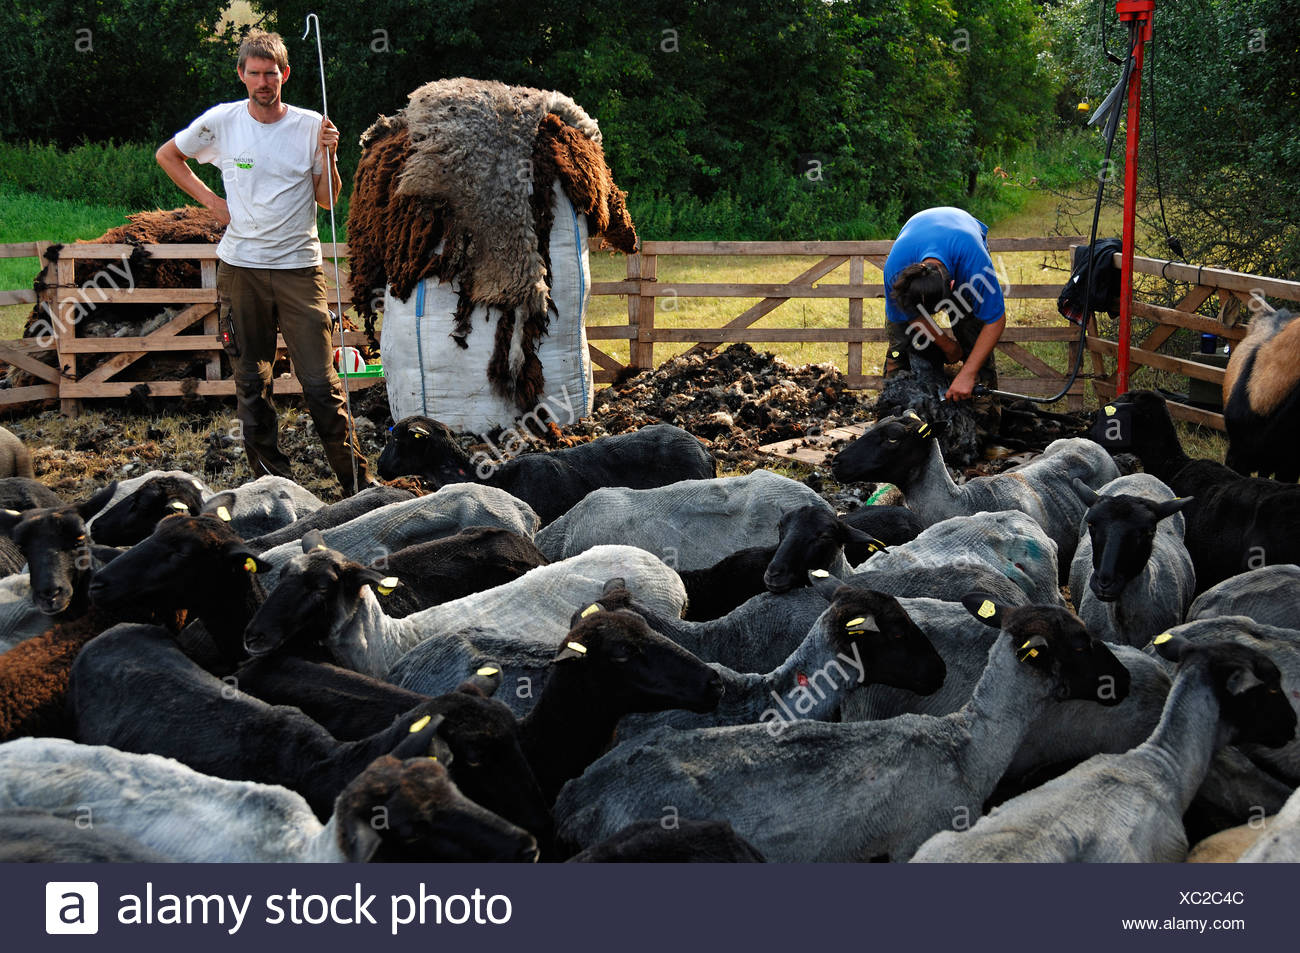 Sheep shearer and assistant holding a crook, freshly shorn sheep at the front and a bag with sheep's wool in the middle - Stock Image